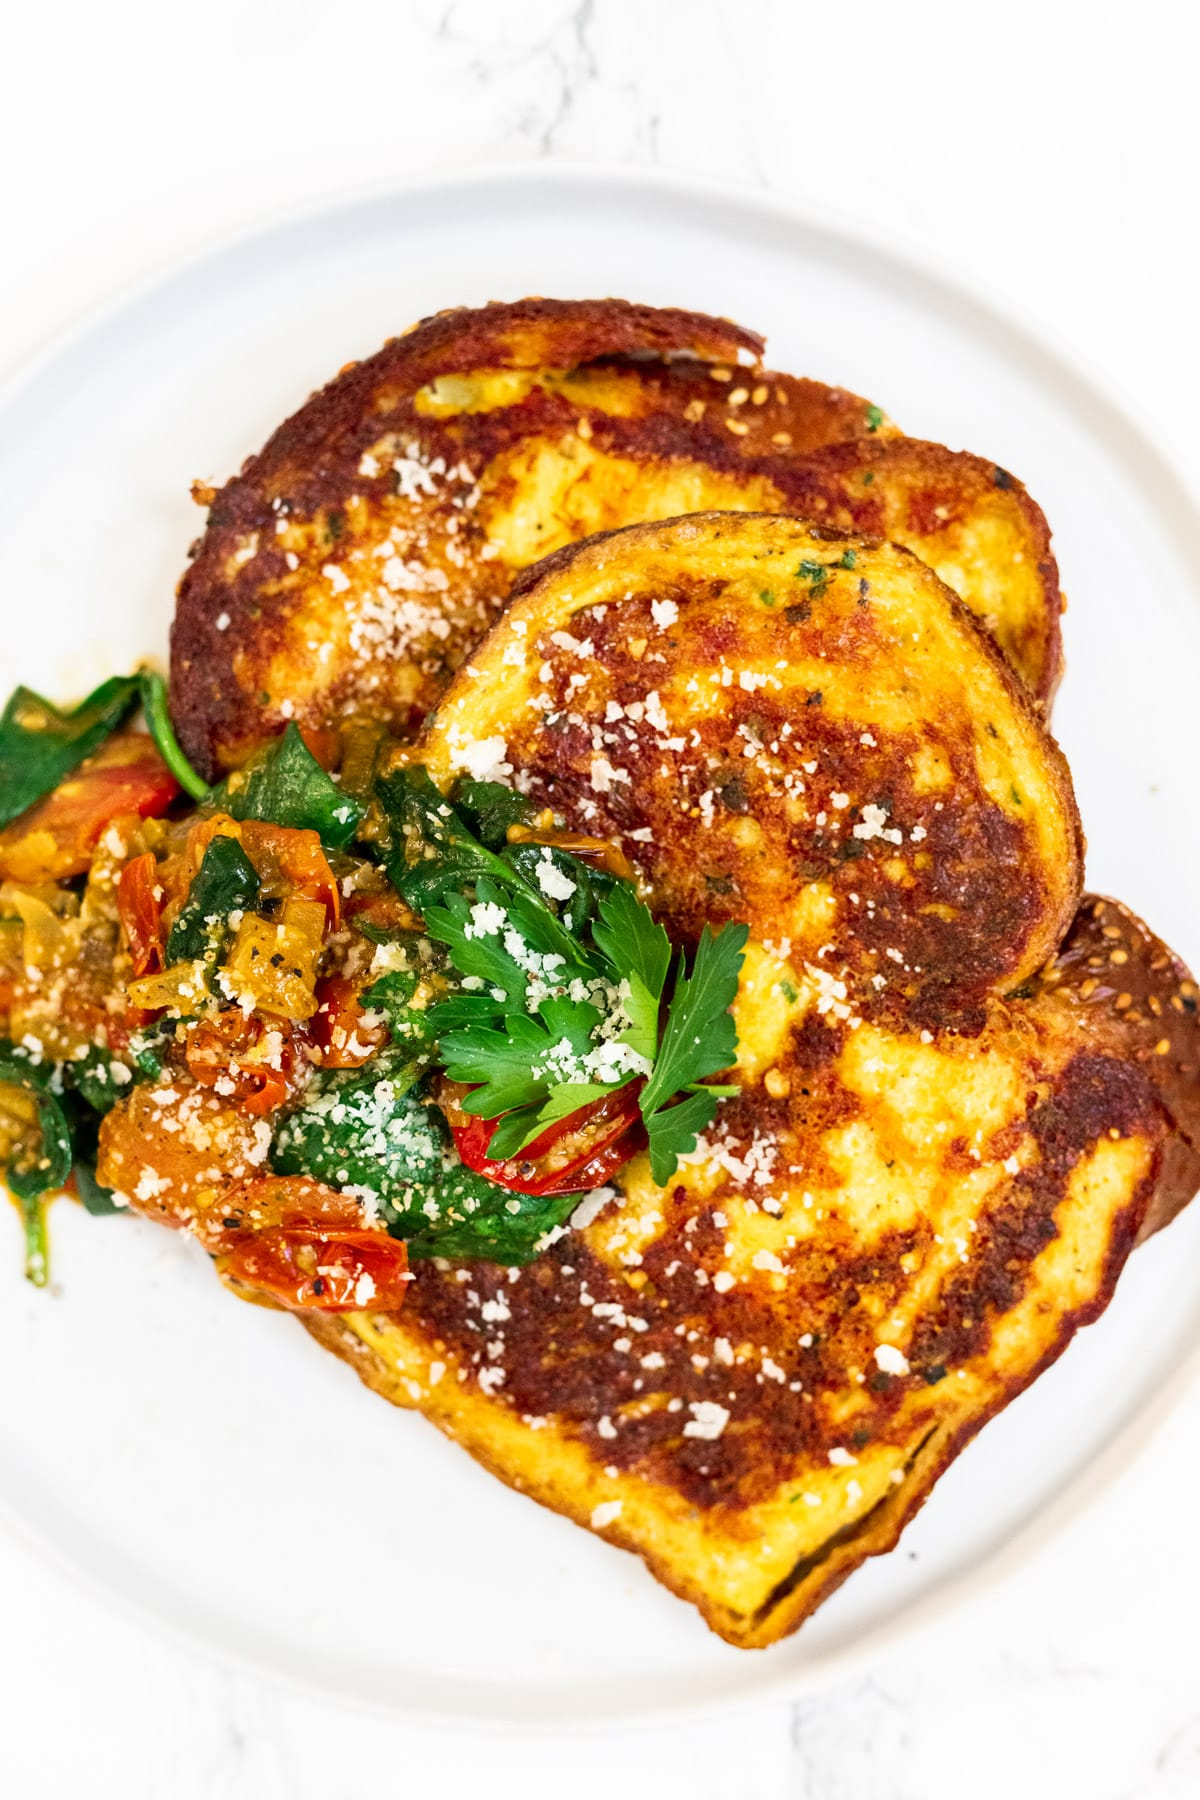 A close up view of a plate of savory parmesan crusted French toast served with pesto cherry tomato sauce.